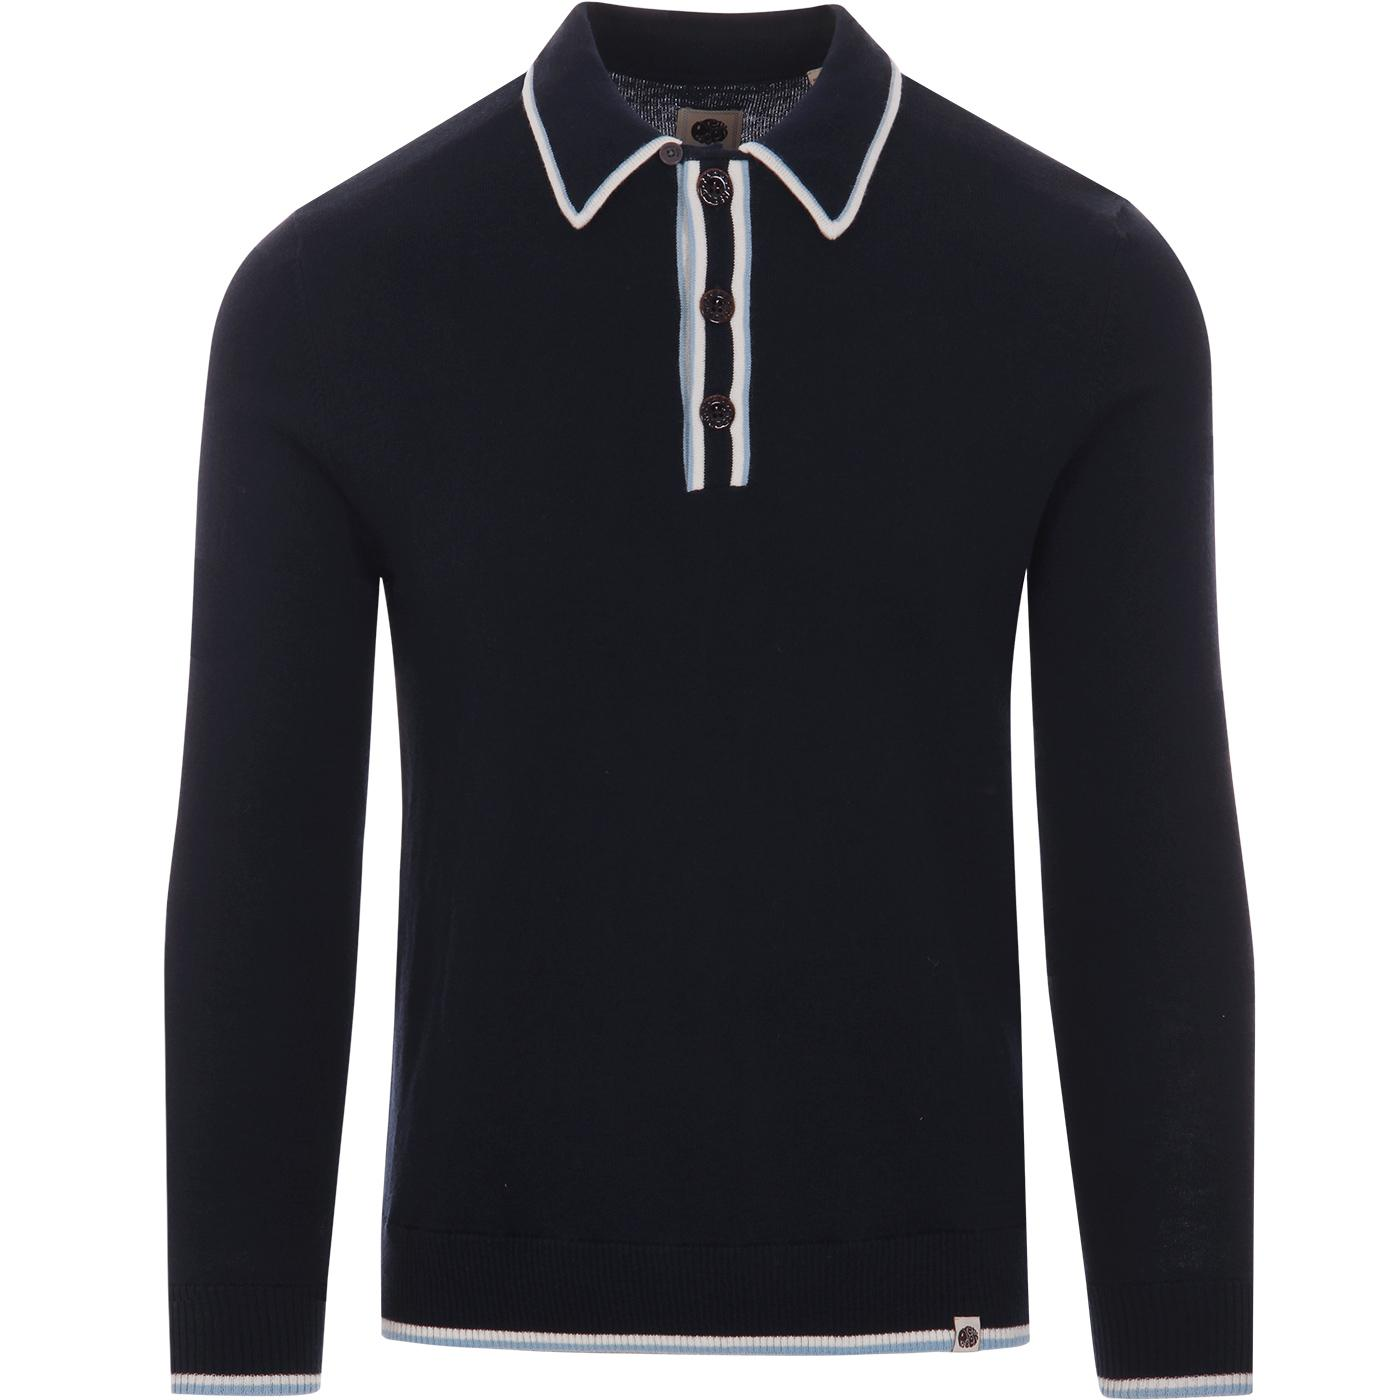 Jenkins PRETTY GREEN Mod Tipped Knit Polo Top NAVY